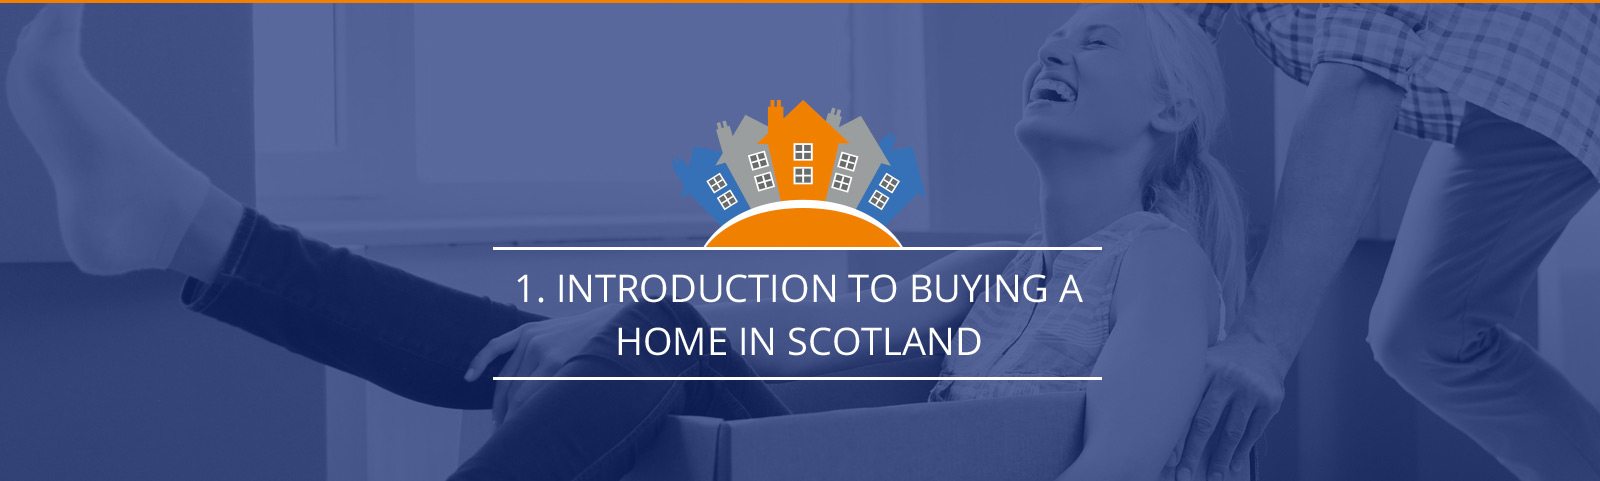 Introduction to buying a home in Scotland